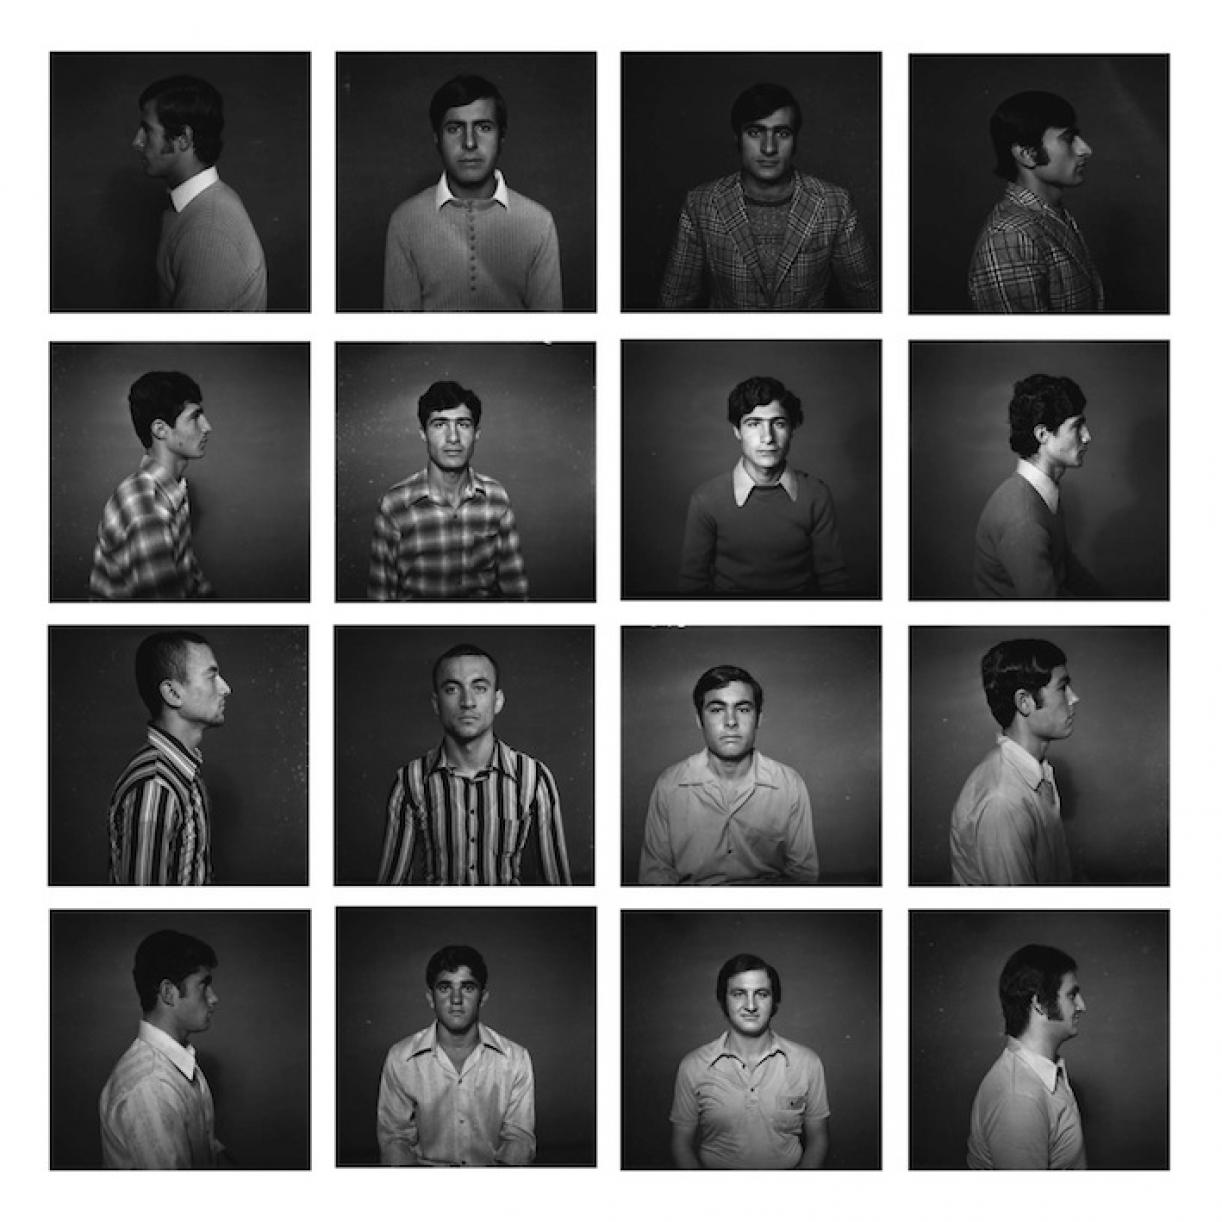 Before they got their military training, Saida early 1970s, 2006, Set of 16 Silver prints, framed, 30 x 30 cm each